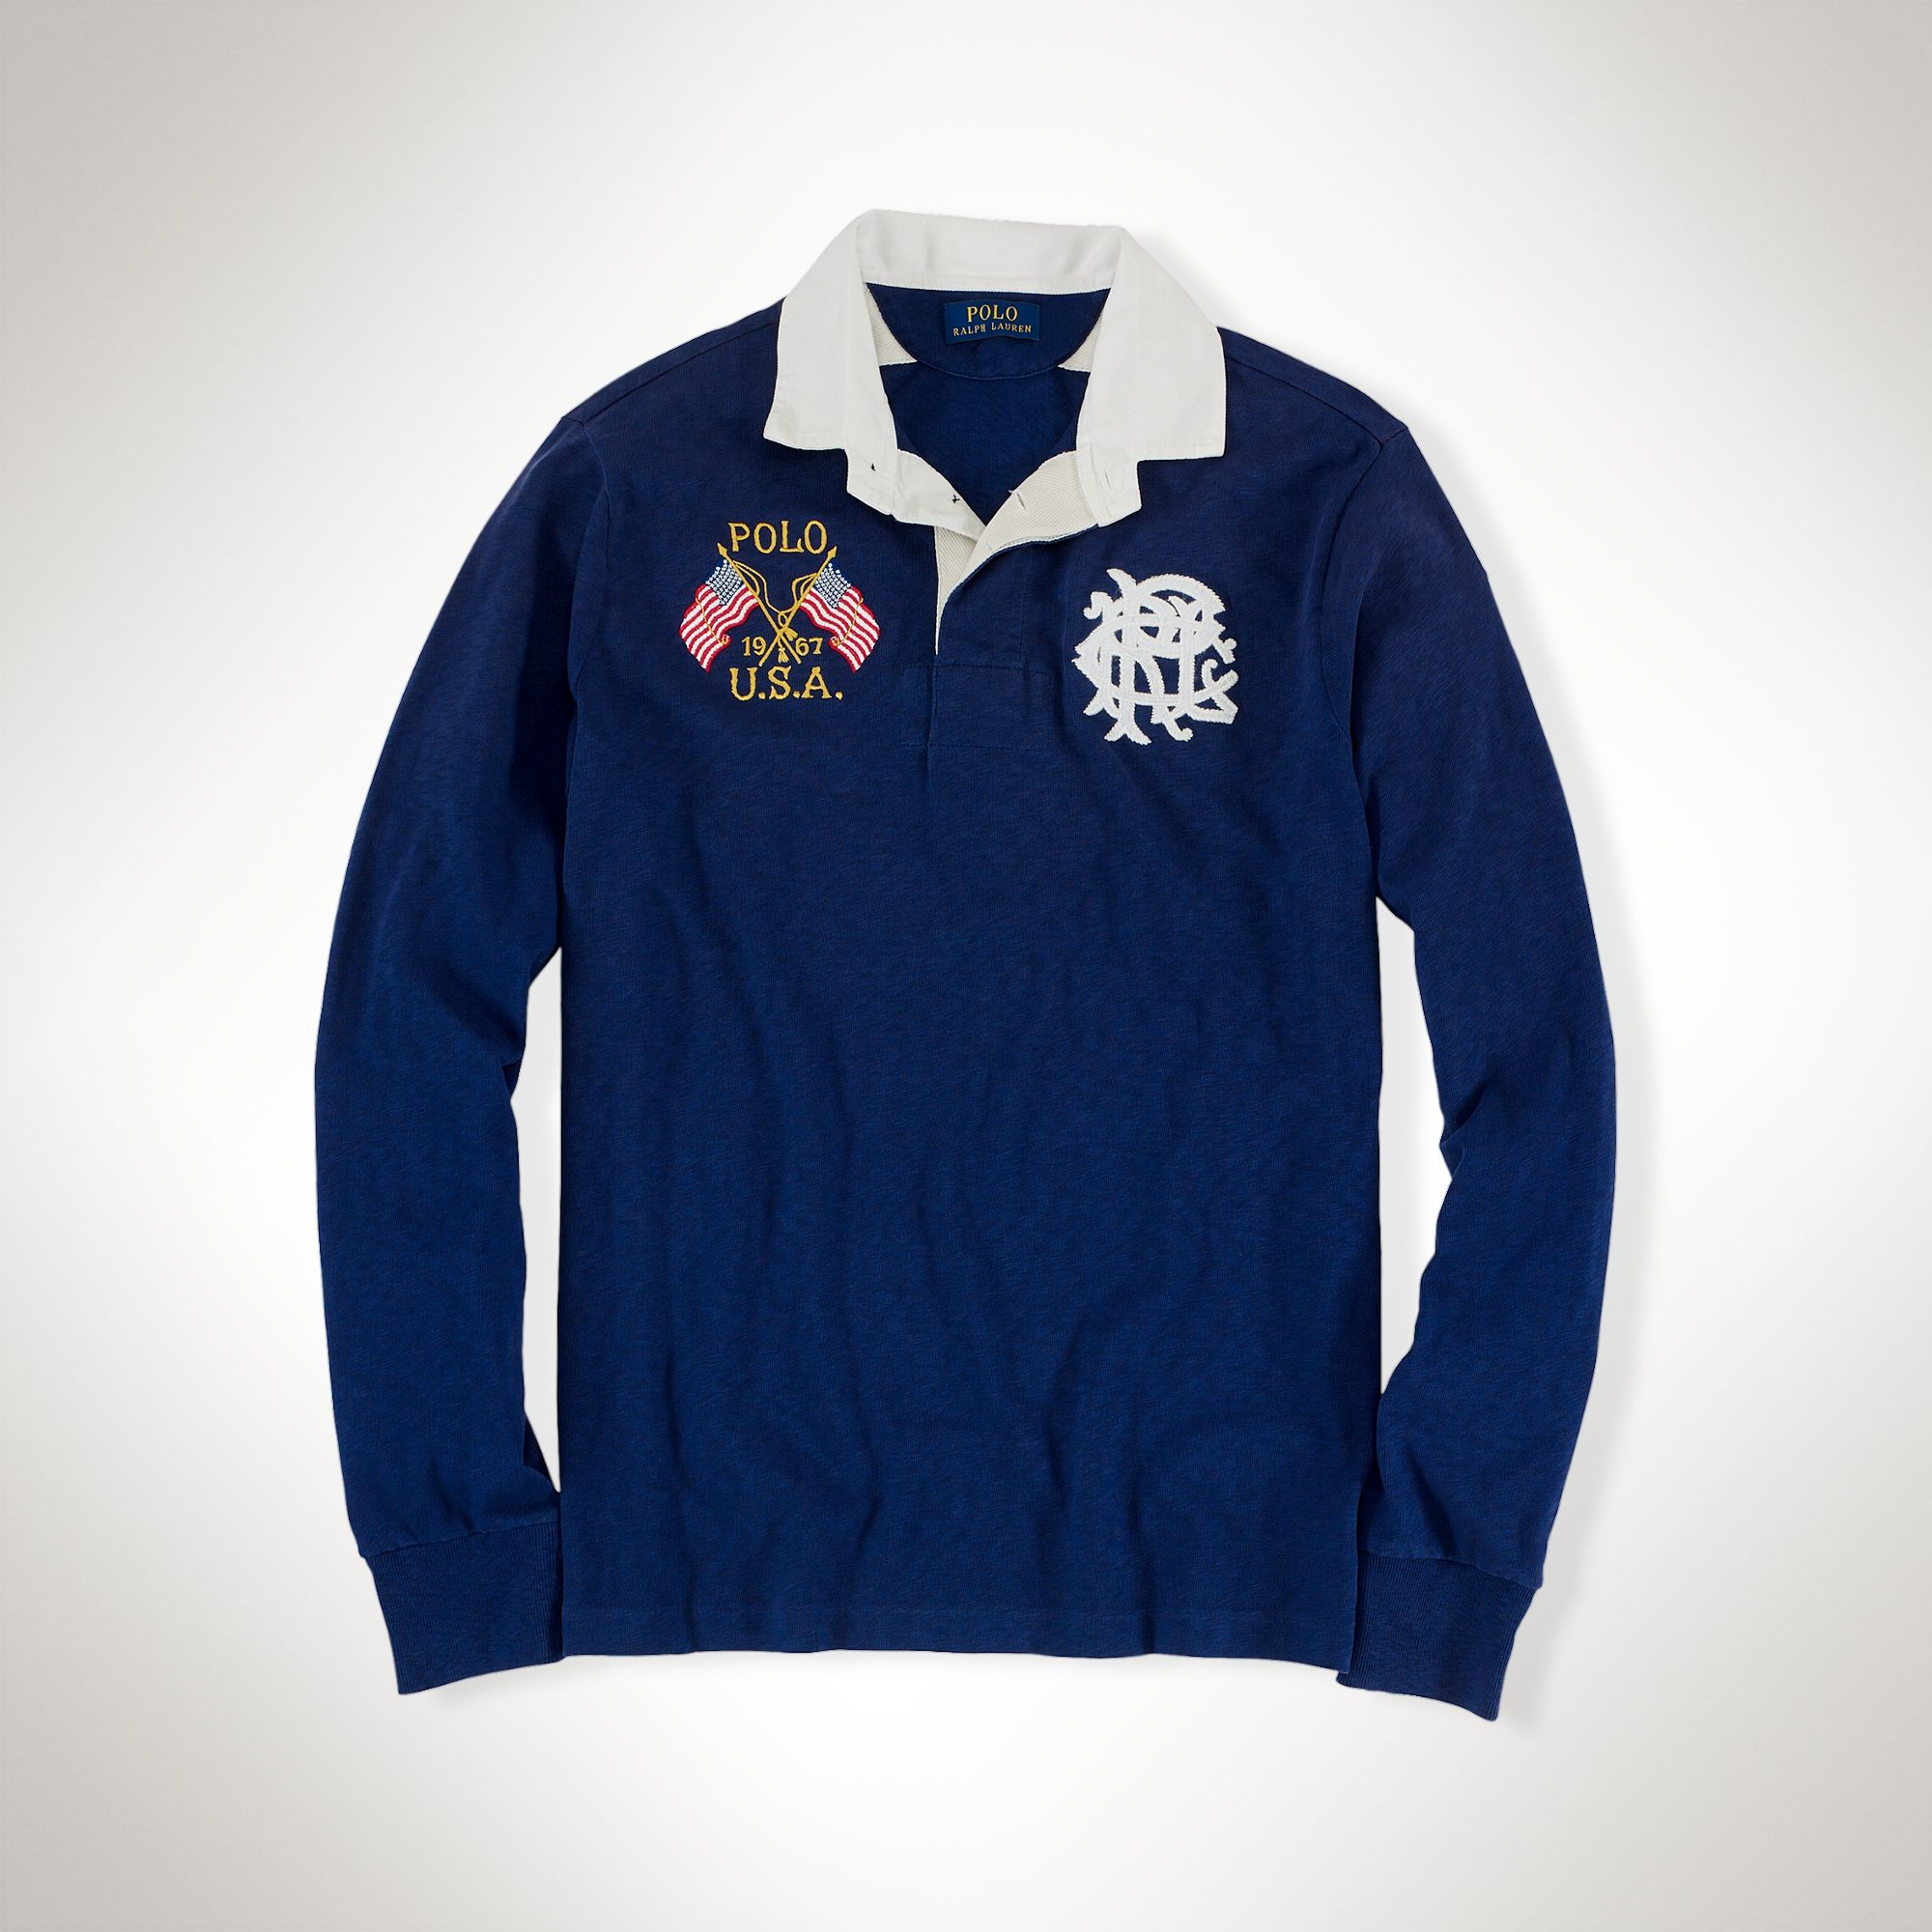 Polo Ralph Lauren Usa CrossedFlags Rugby Shirt in Blue